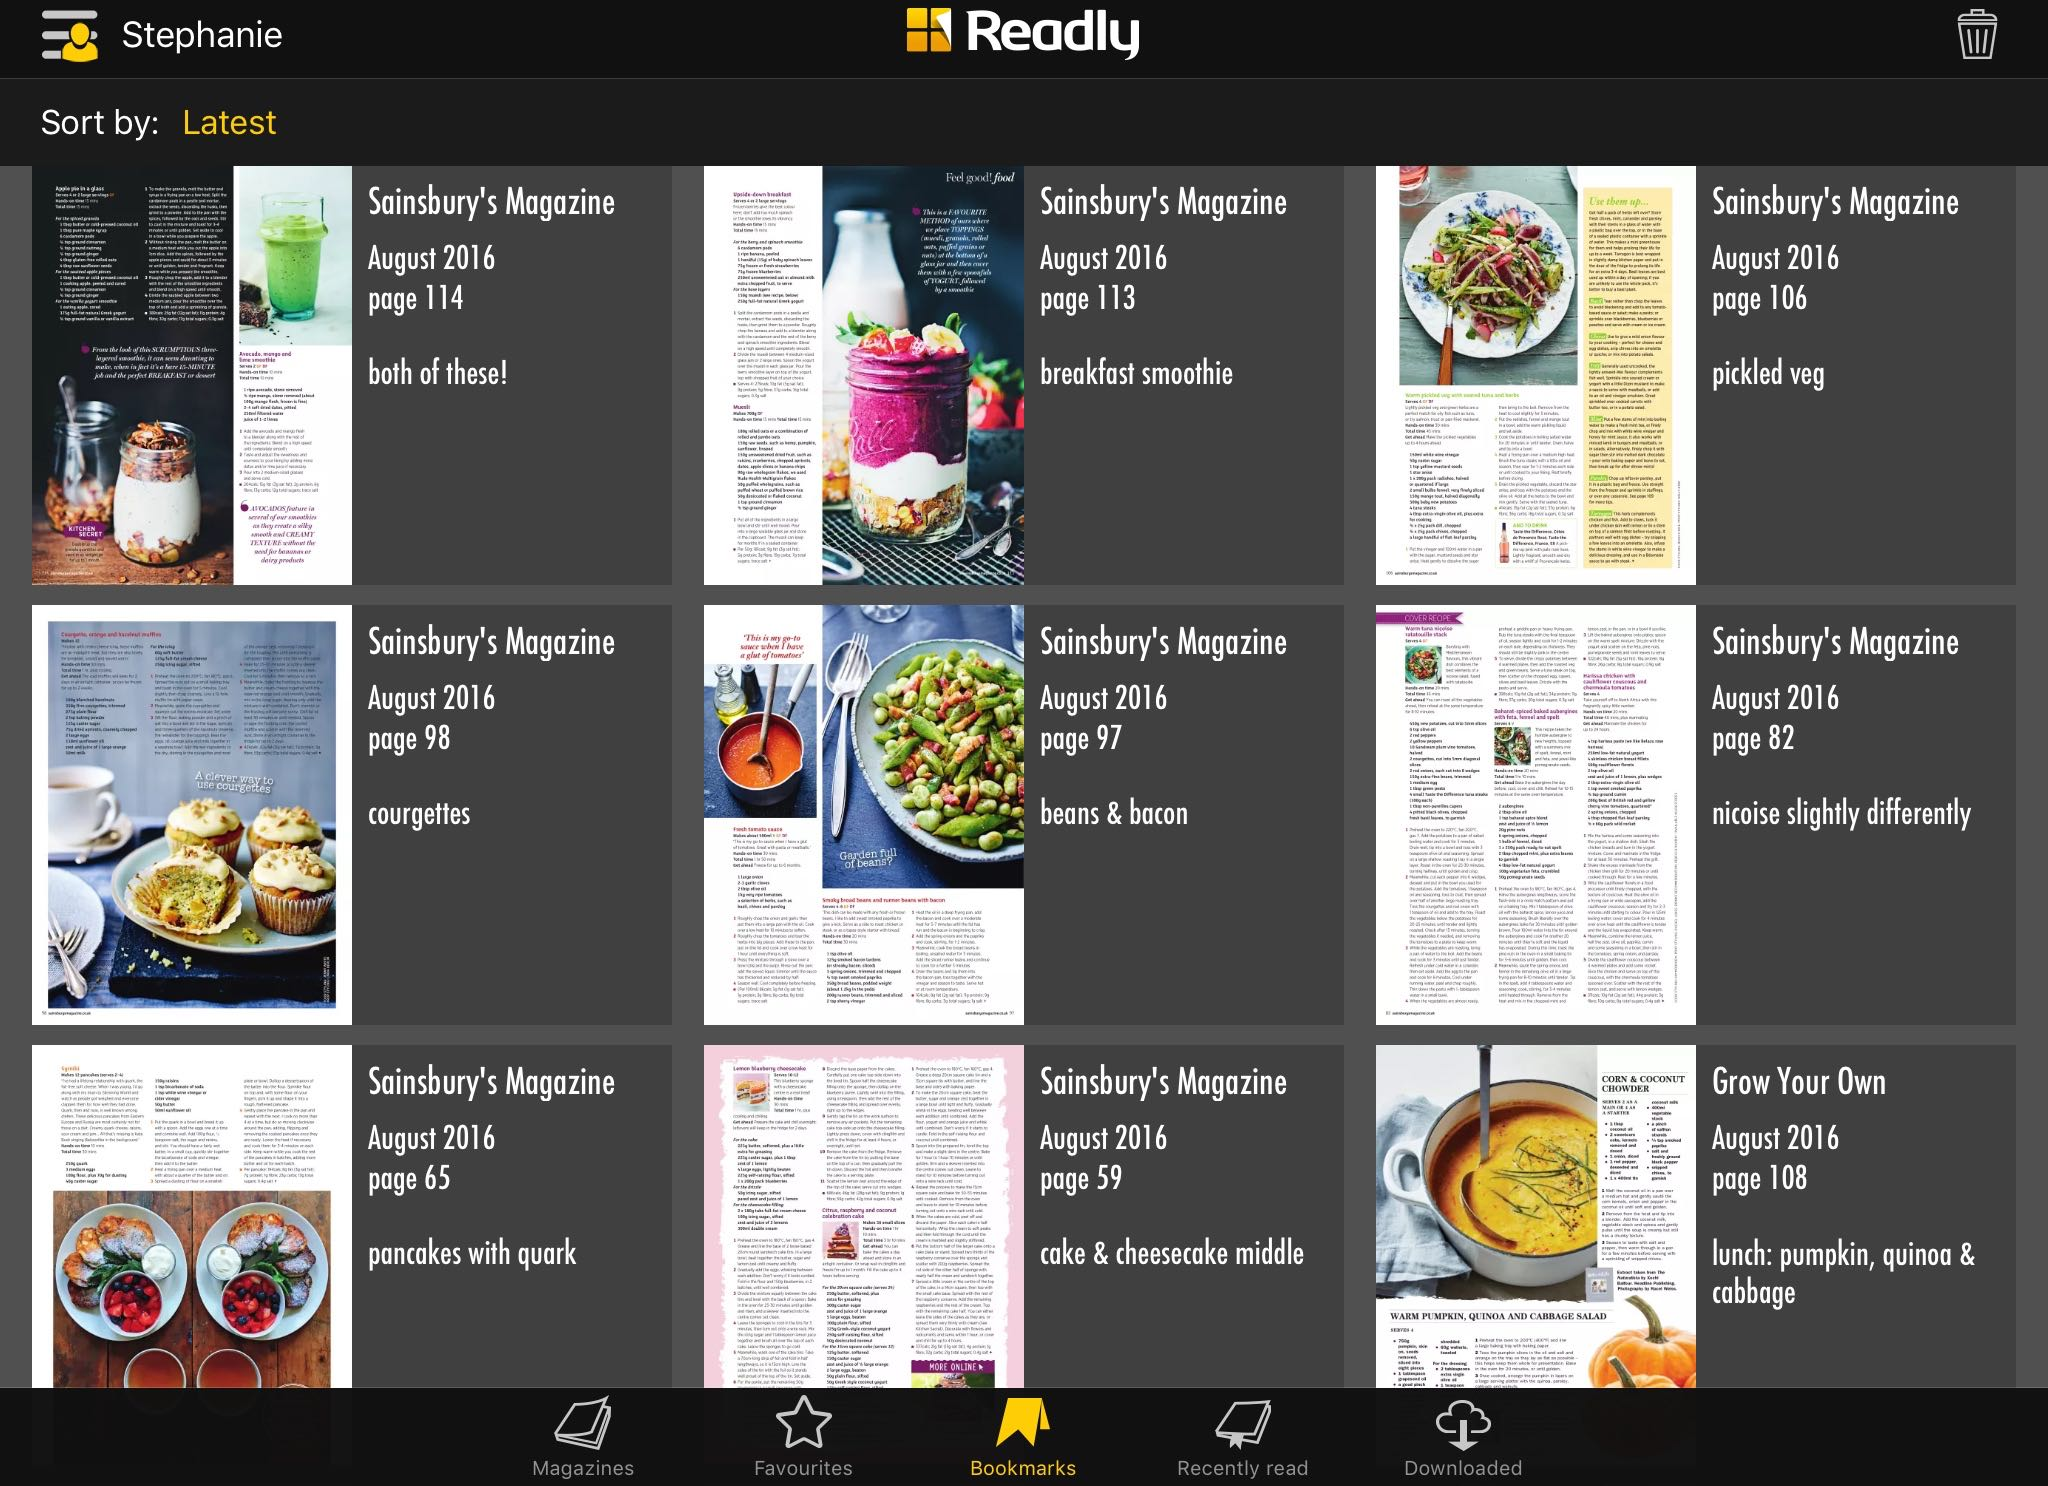 My bookmarks all seem to be about food!